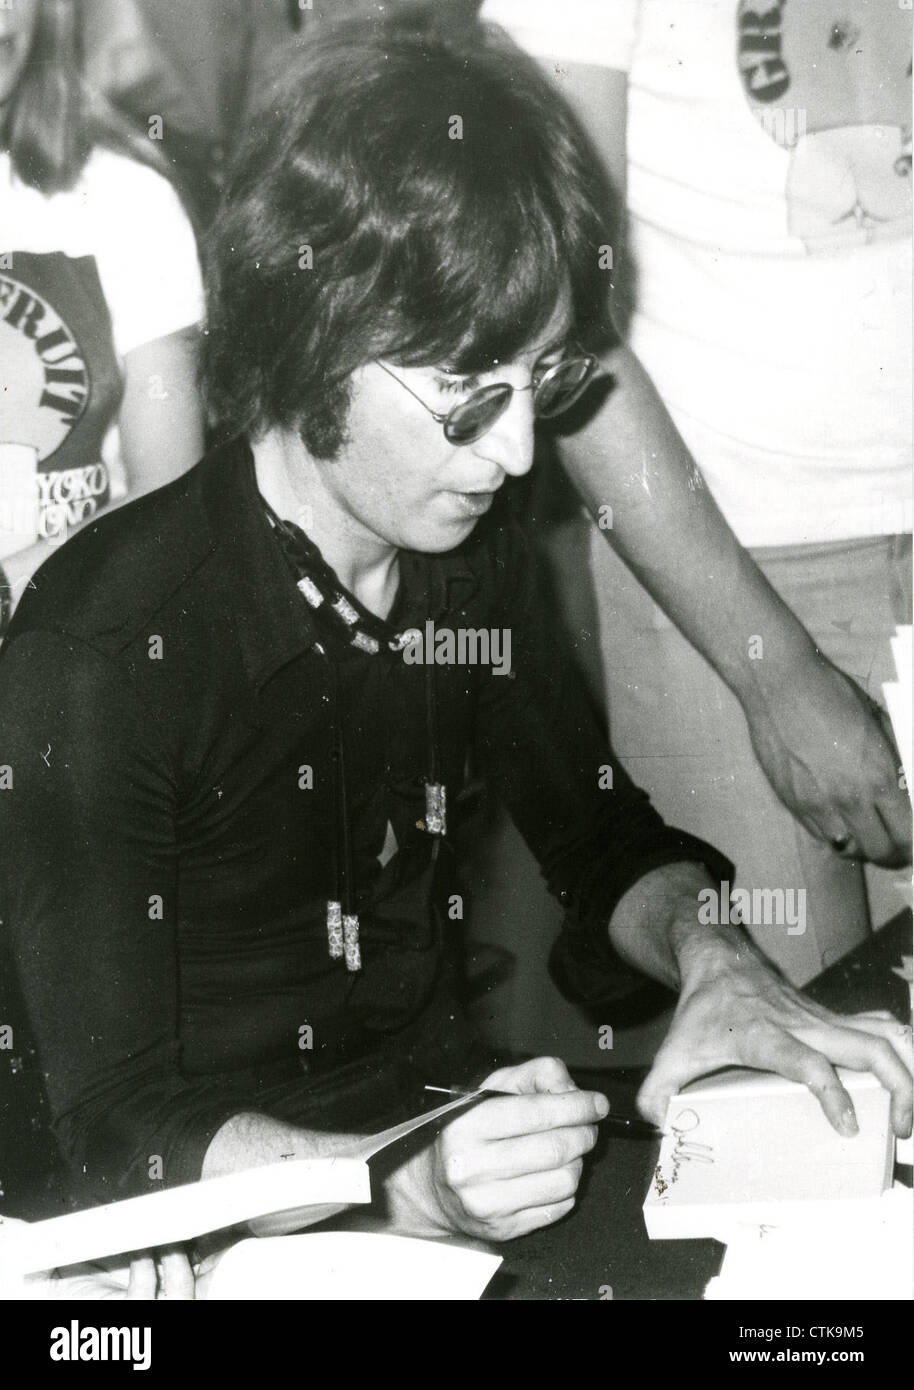 003907 - John Lennon at a Grapefruit book signing in Selfridges, London on  15th July 1971 - Stock Image